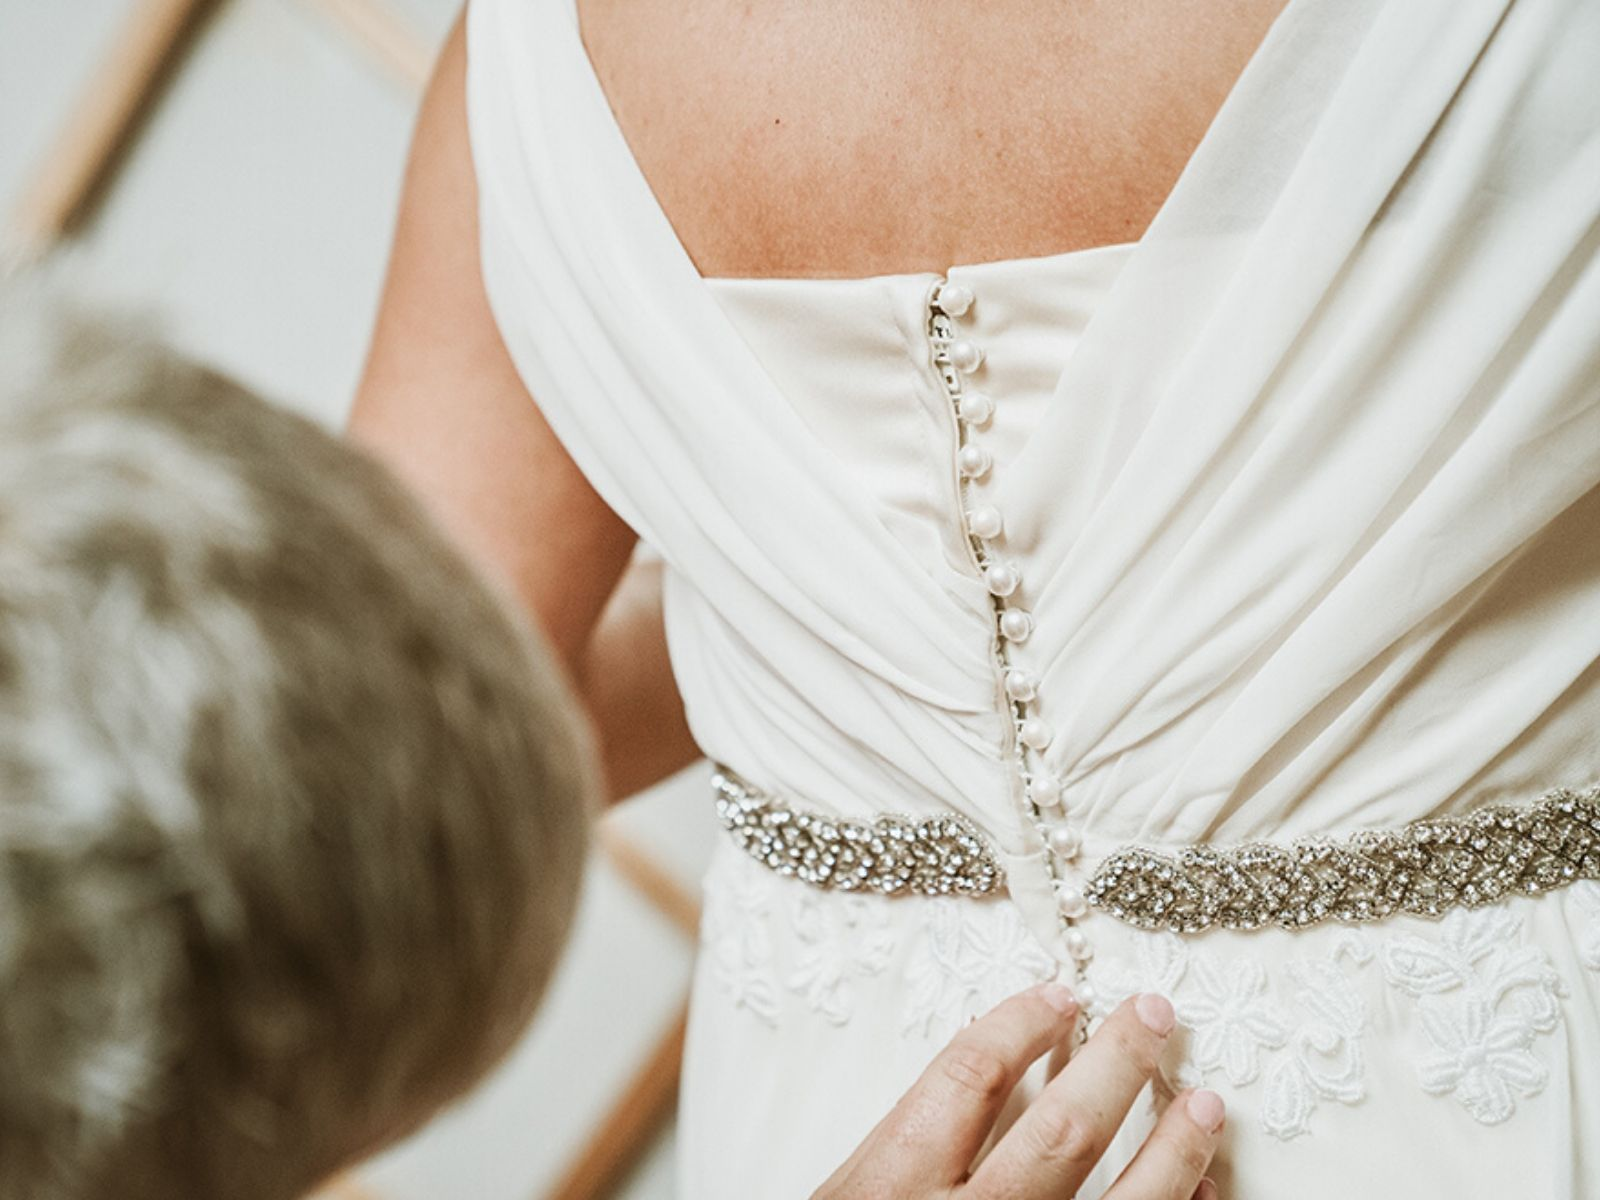 Bespoke wedding dress service at Boho Bride in Stratford Upon Avon